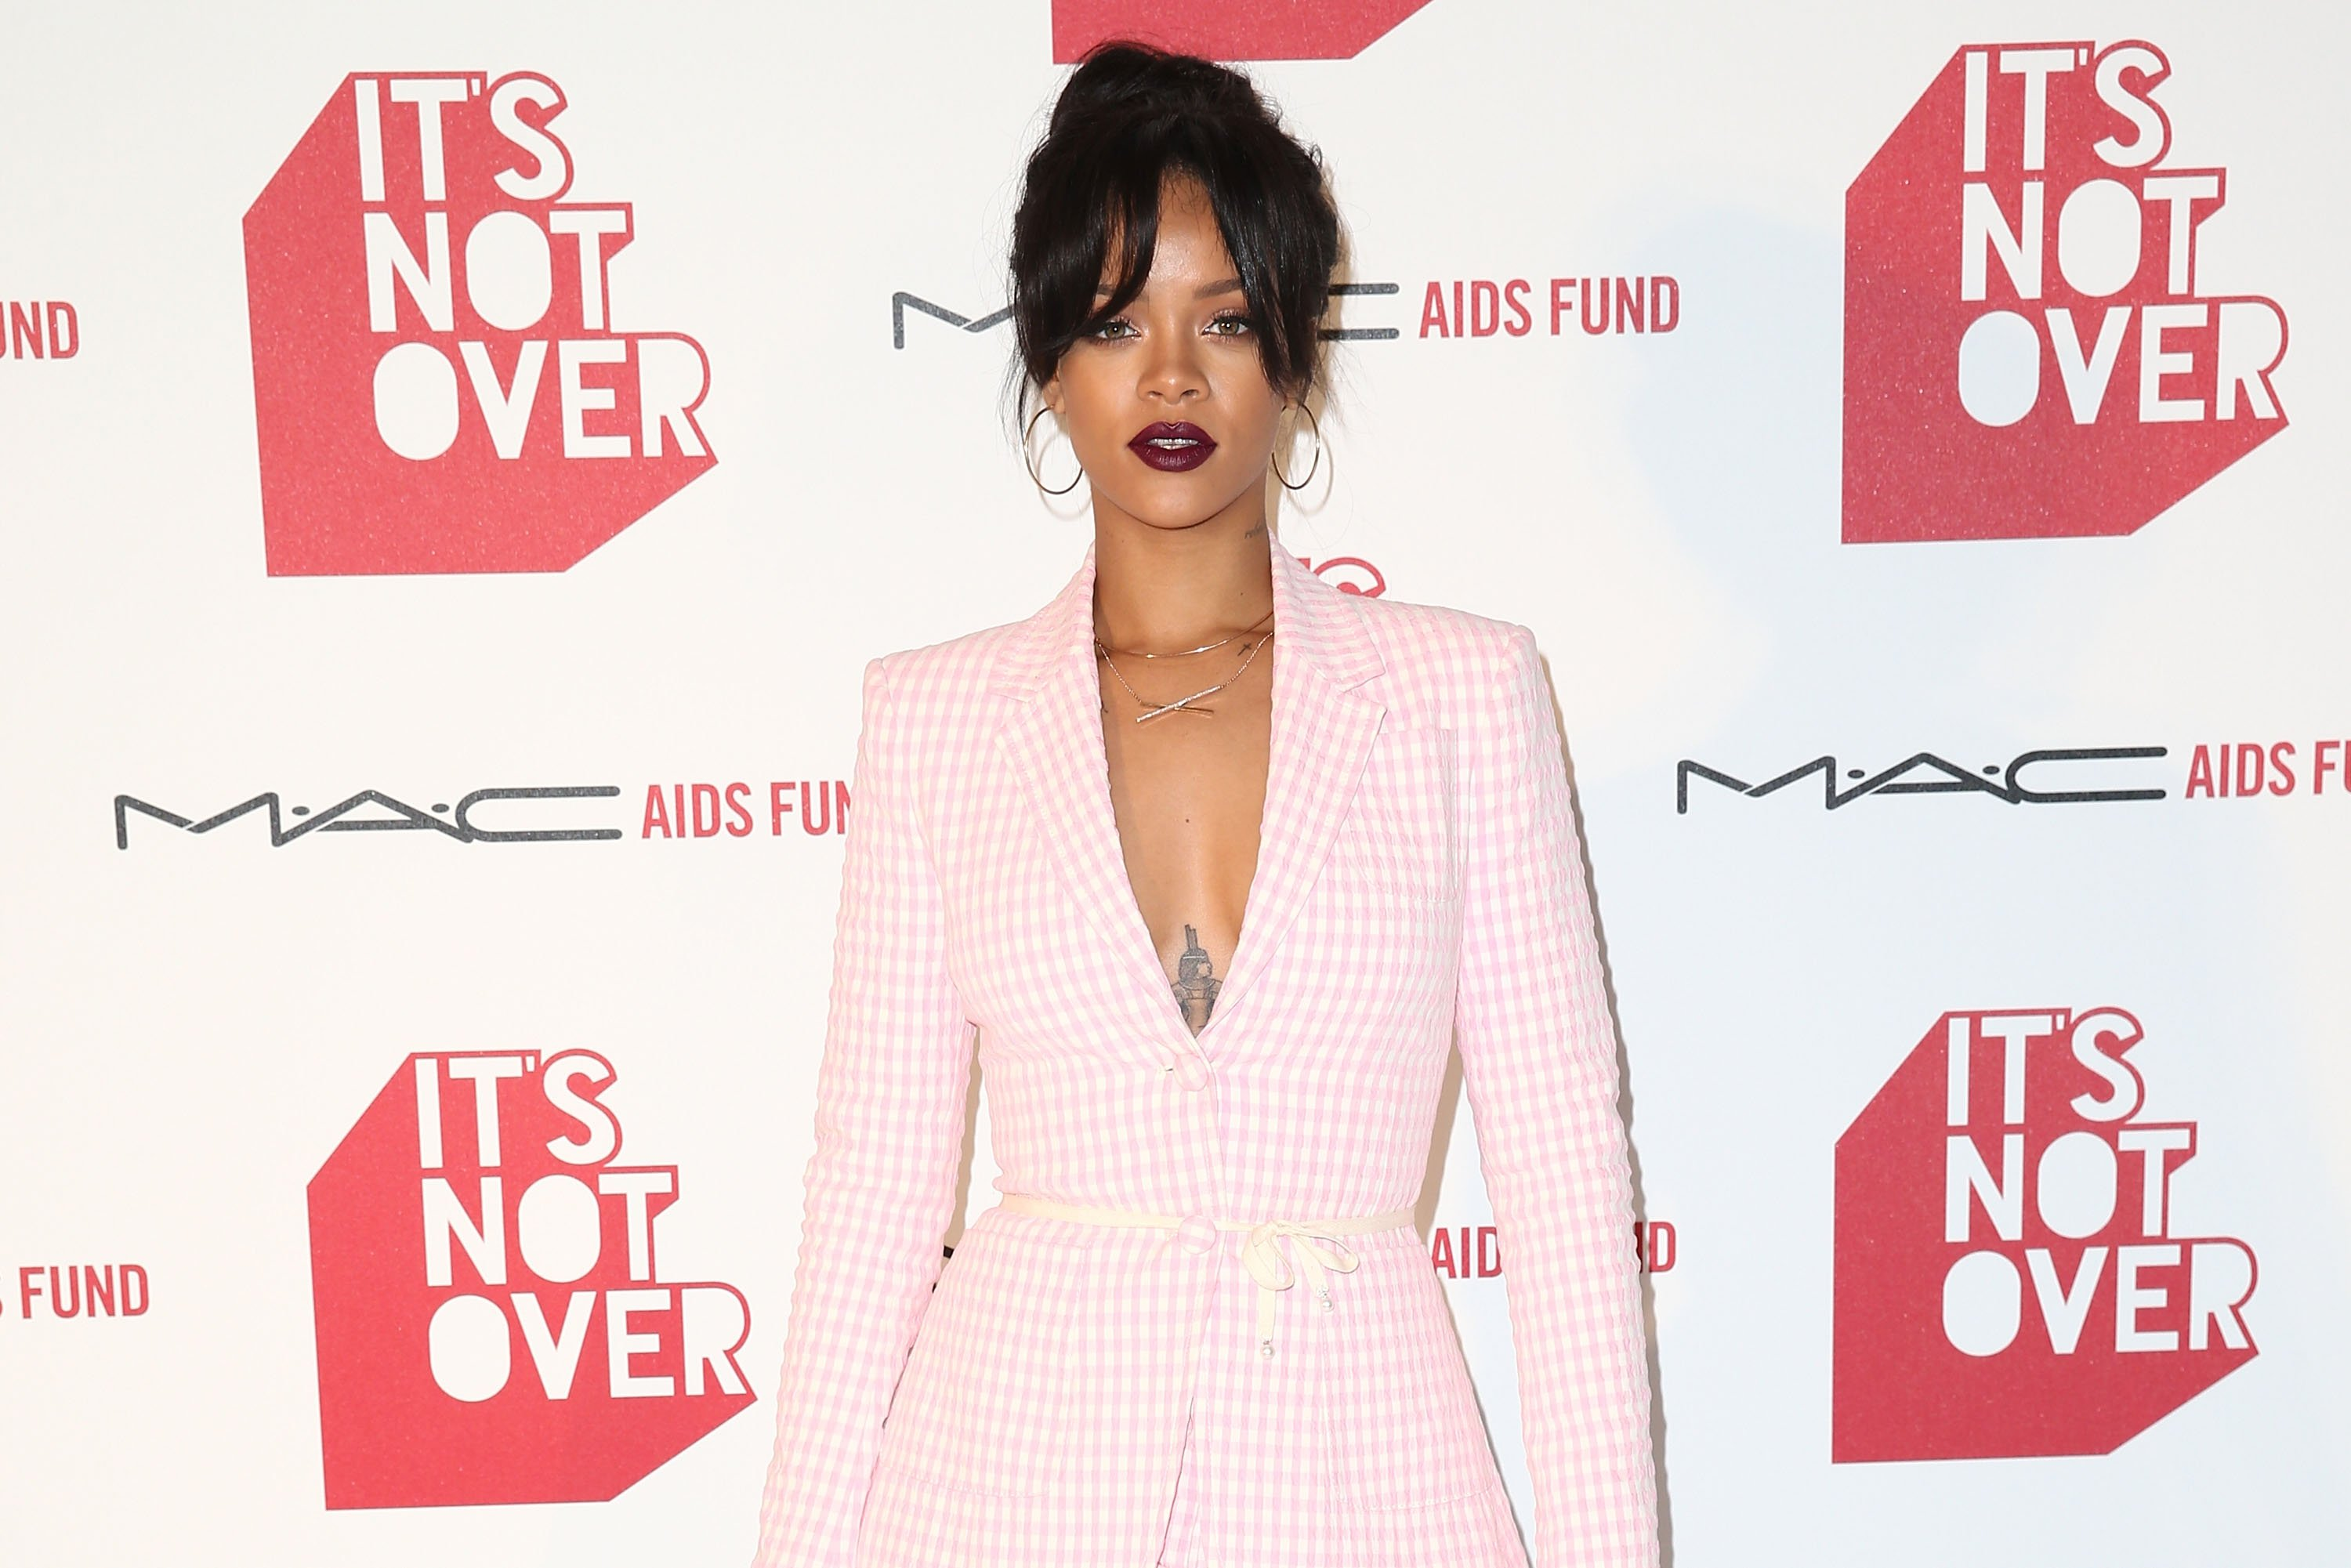 """Rihanna at MAC Cosmetics And MAC AIDS Fund World Premiere Of """"It's Not Over"""" Directed By Andrew Jenks on Nov. 18, 2014 in Los Angeles. 